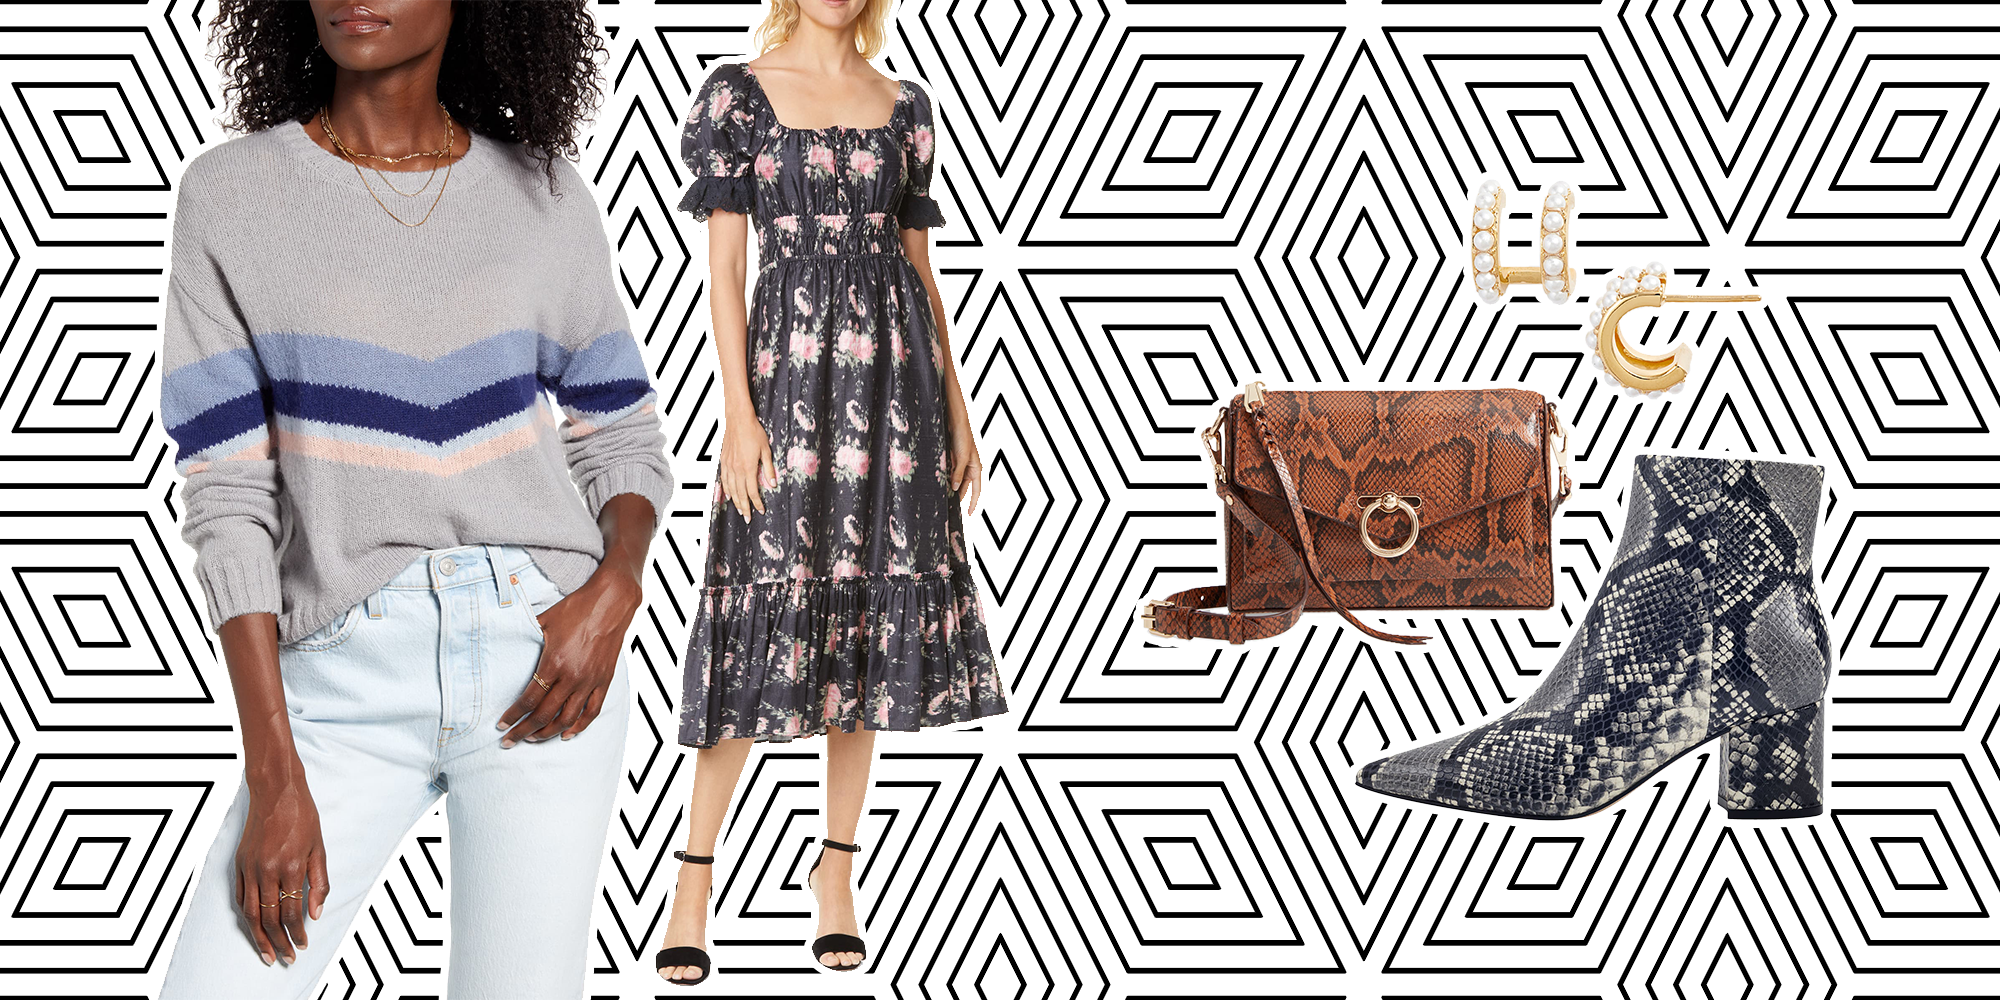 Nordstrom's Winter Sale Is a Great Place to Stock Up on Spring Essentials